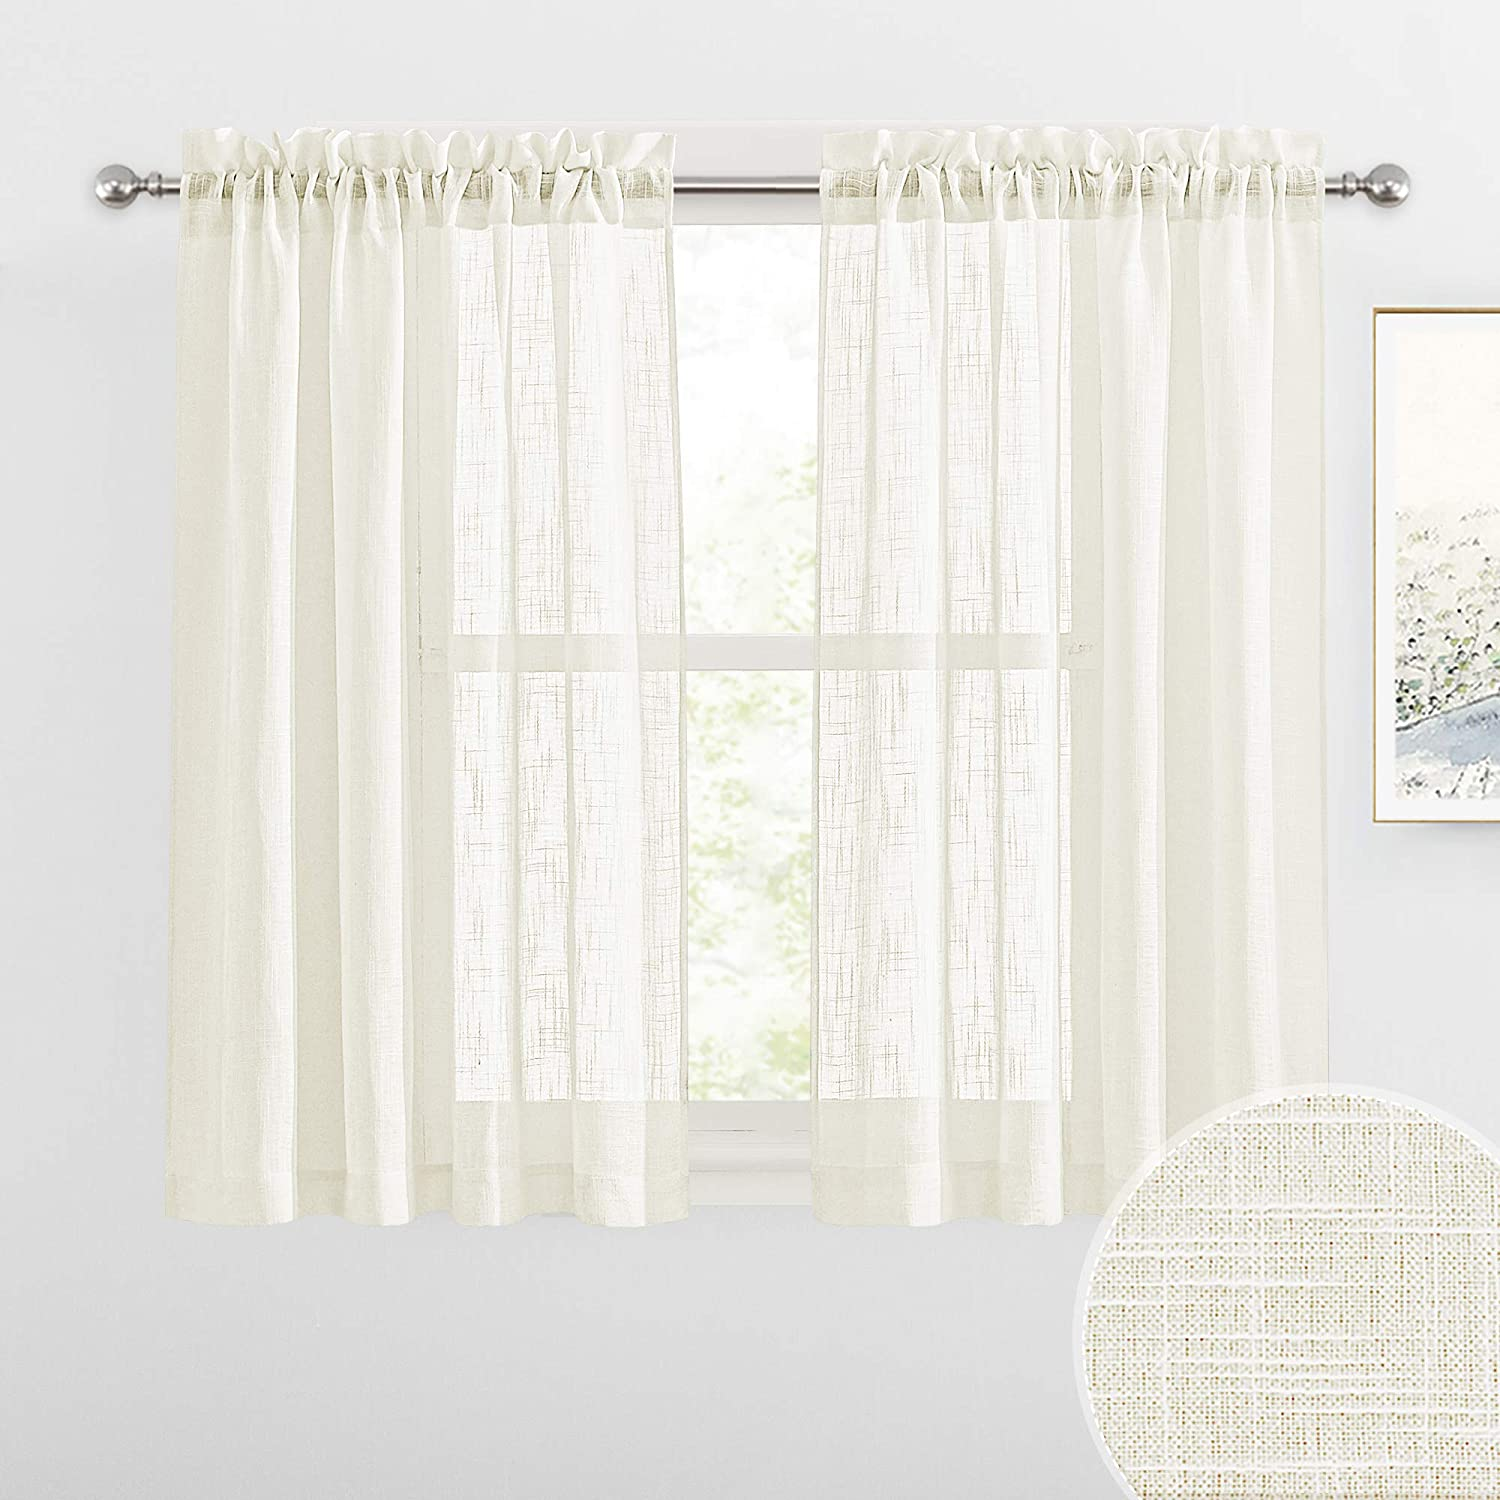 RYB HOME Semi Sheer Curtains - Linen Textured Fabric Privacy Sheer Light Filtering Window Decor for Bedroom Kitchen Bath Kids Nursery, Natural, Wide 52 x Long 45 inch, Set of 2